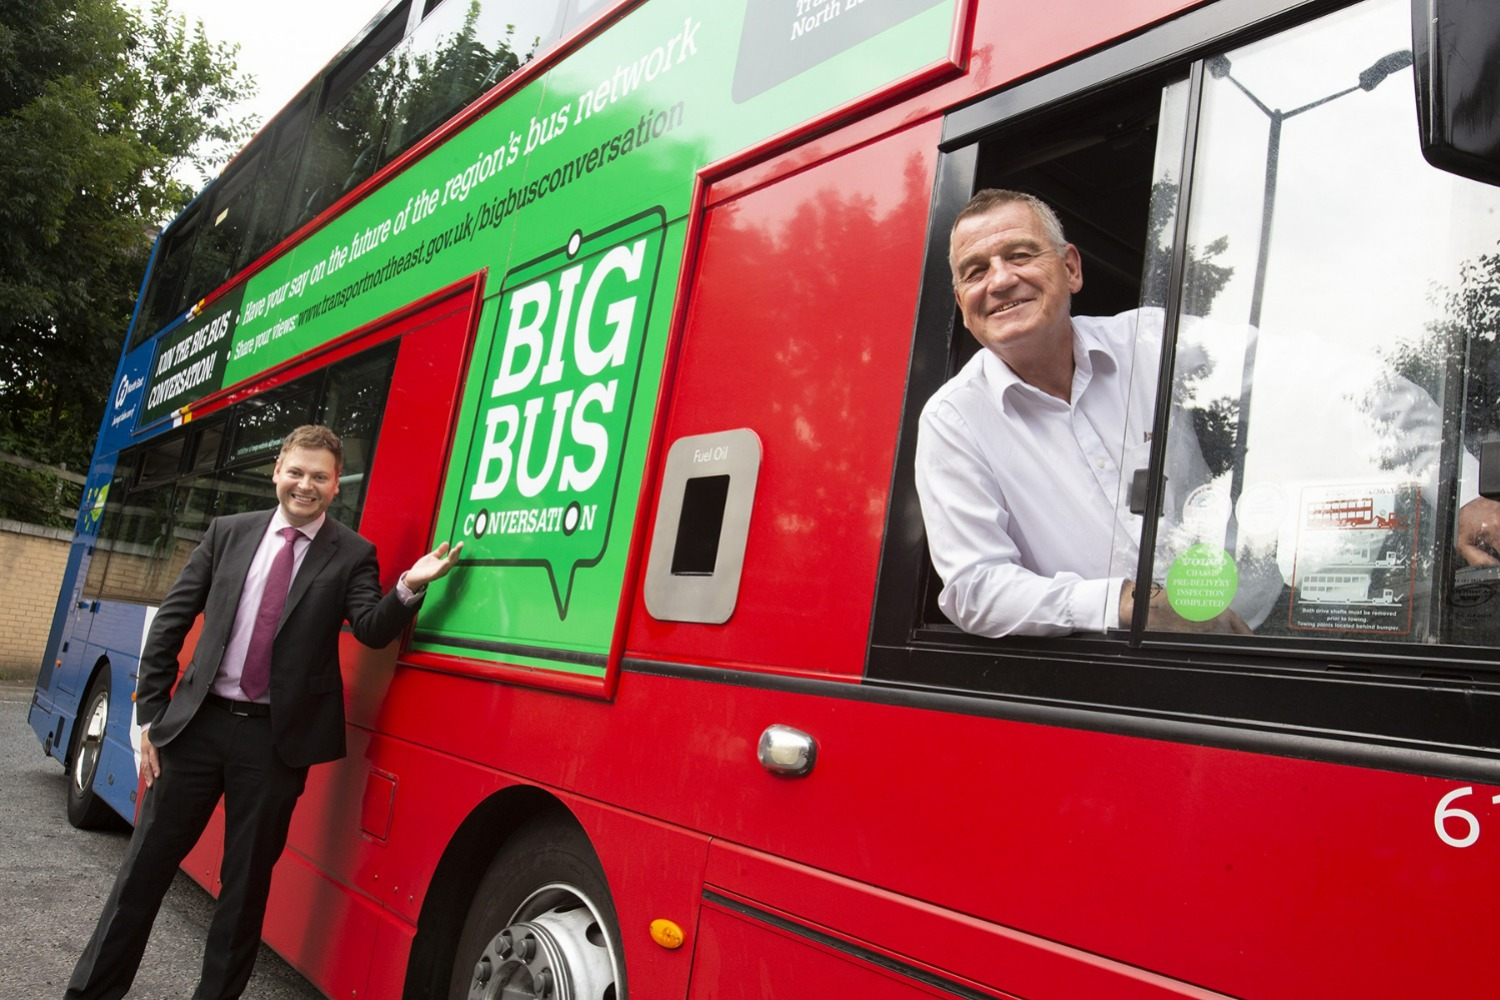 Man dressed in dark suit and purple tie stands beside red double decker bus gesturing towards advert on bus for the Big Bus Conversation. Another man sits in the drivers seat of the bus in a white shirt. Both are smiling towards the camera.